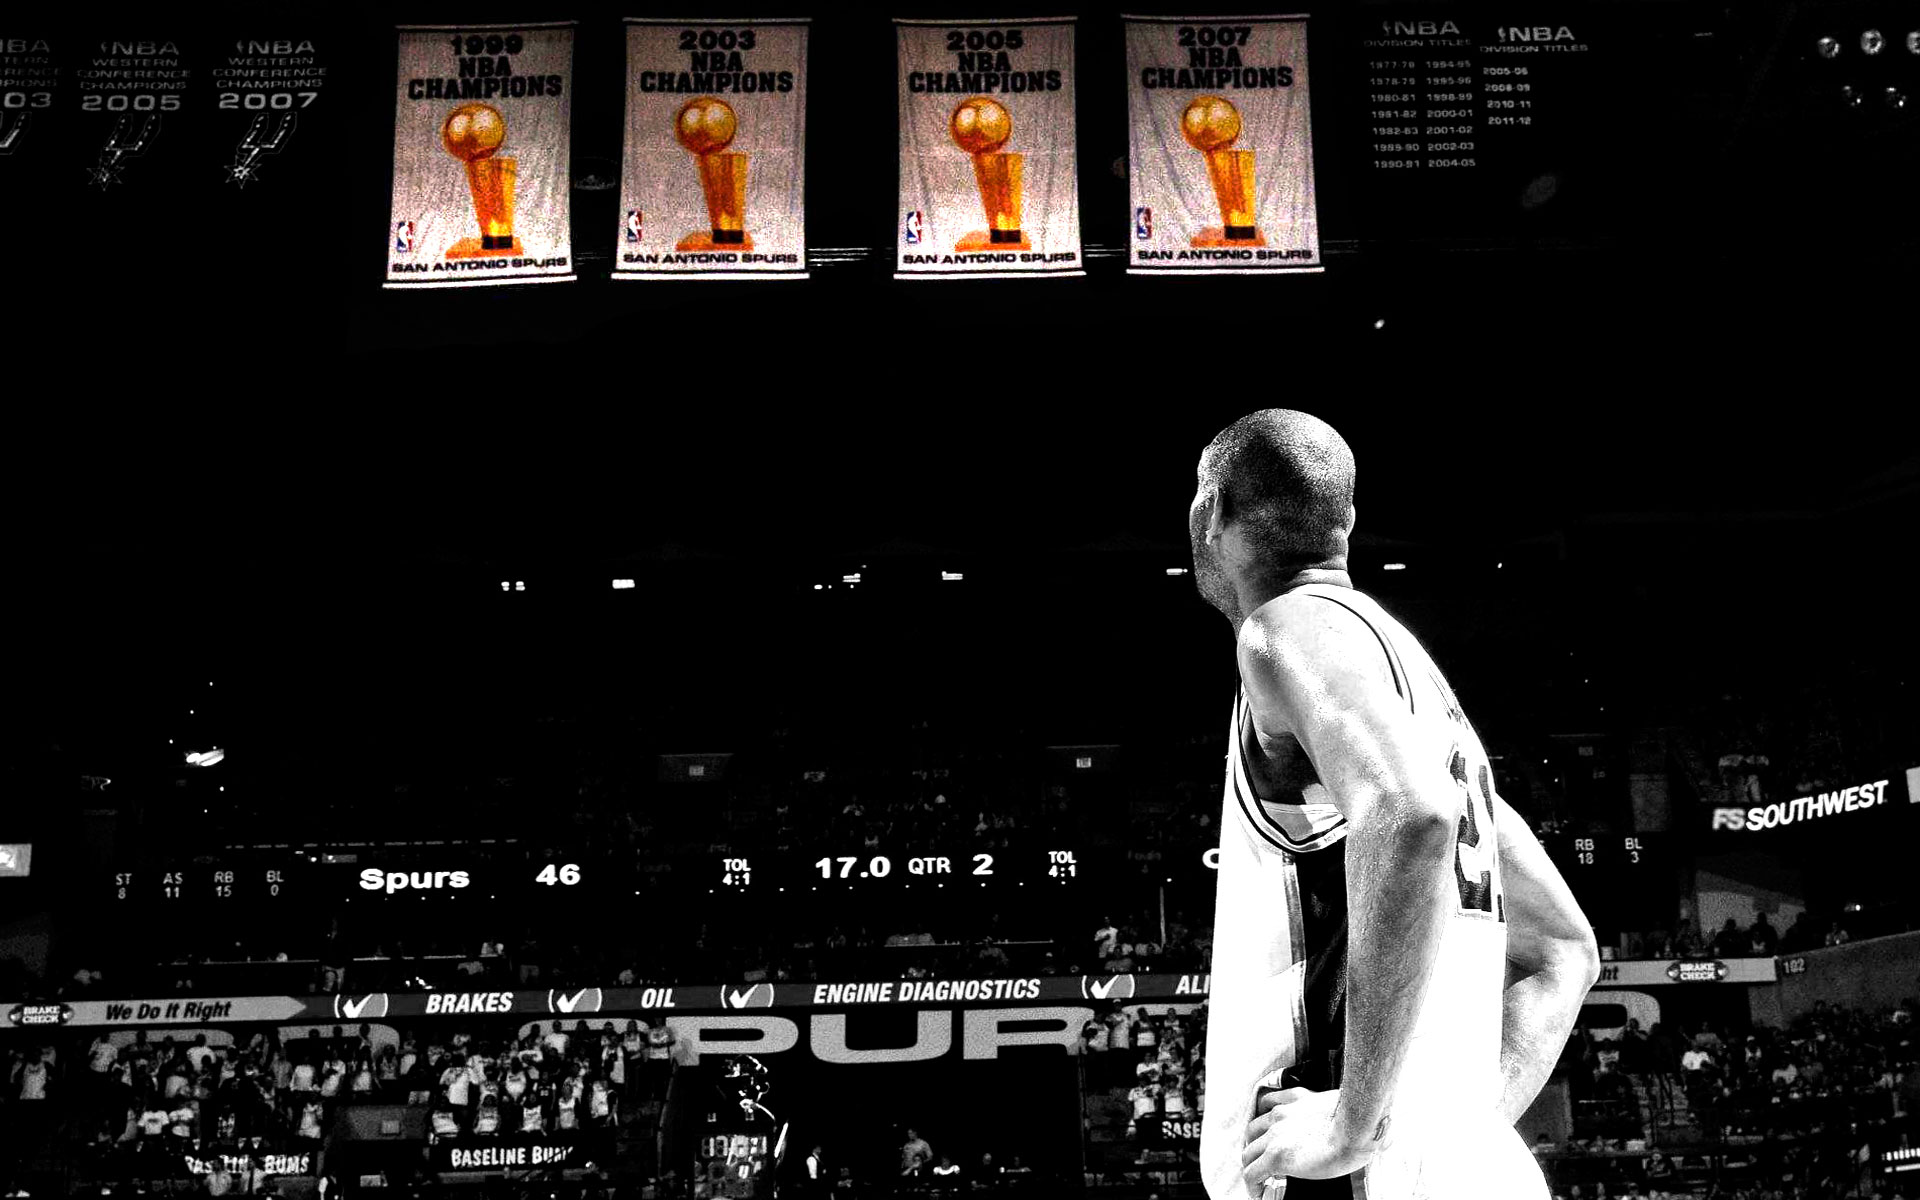 Tim duncan spurs championship banners 1920x1200 wallpaper - Tim duncan iphone wallpaper ...